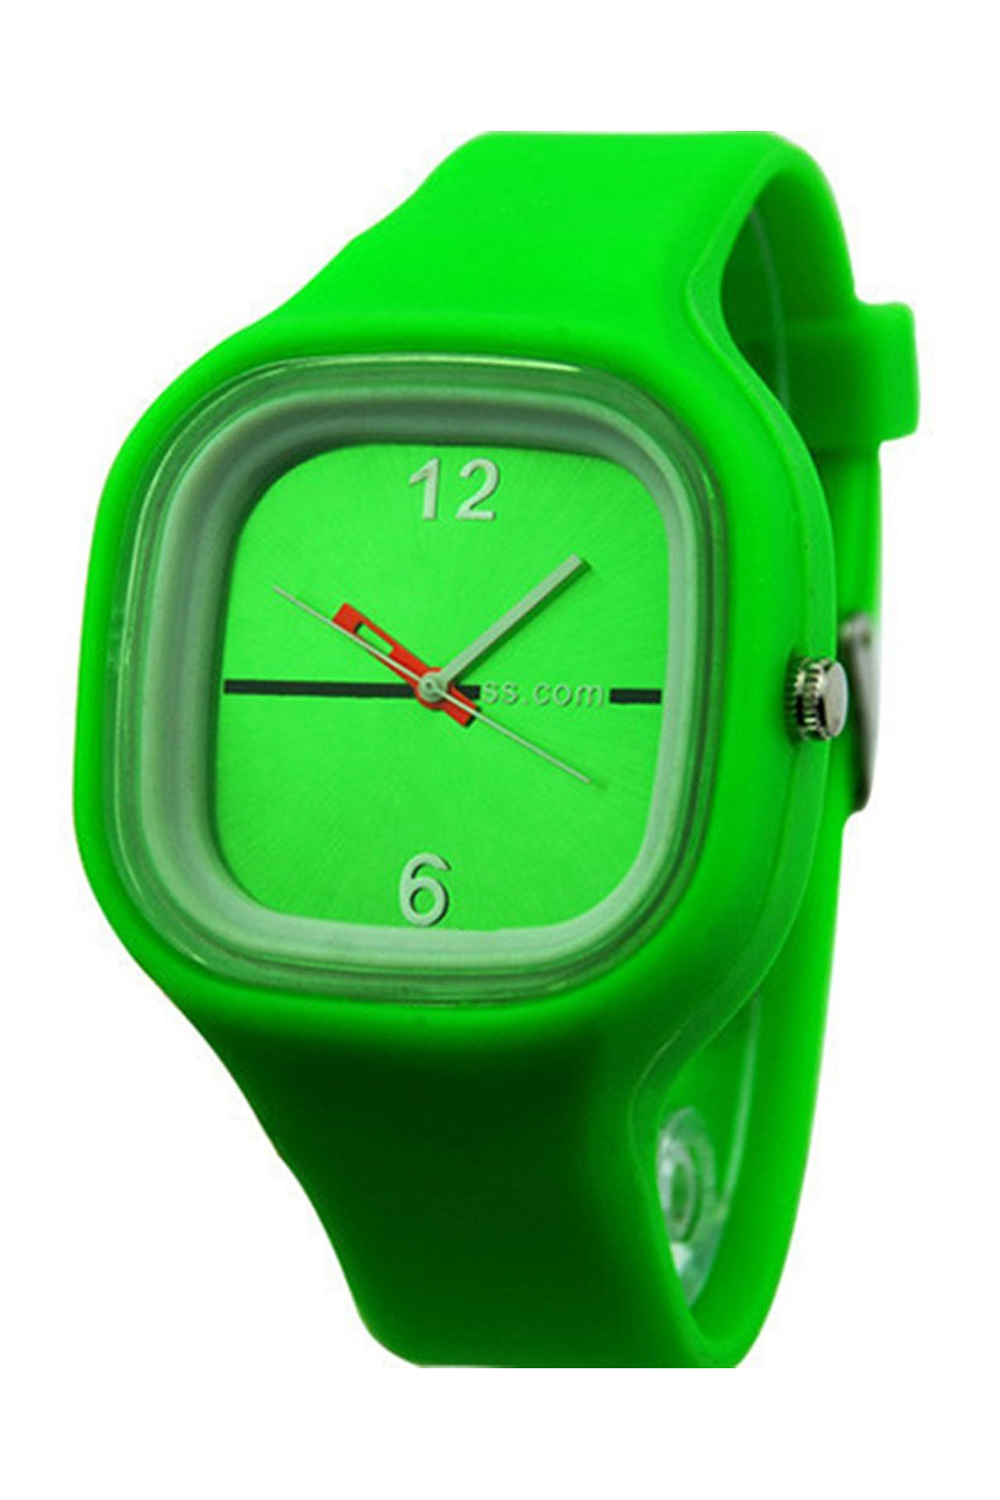 YCYS!Unisex Colorful Jelly Silicone Fashion Quartz Wrist Watch GreenYCYS!Unisex Colorful Jelly Silicone Fashion Quartz Wrist Watch Green